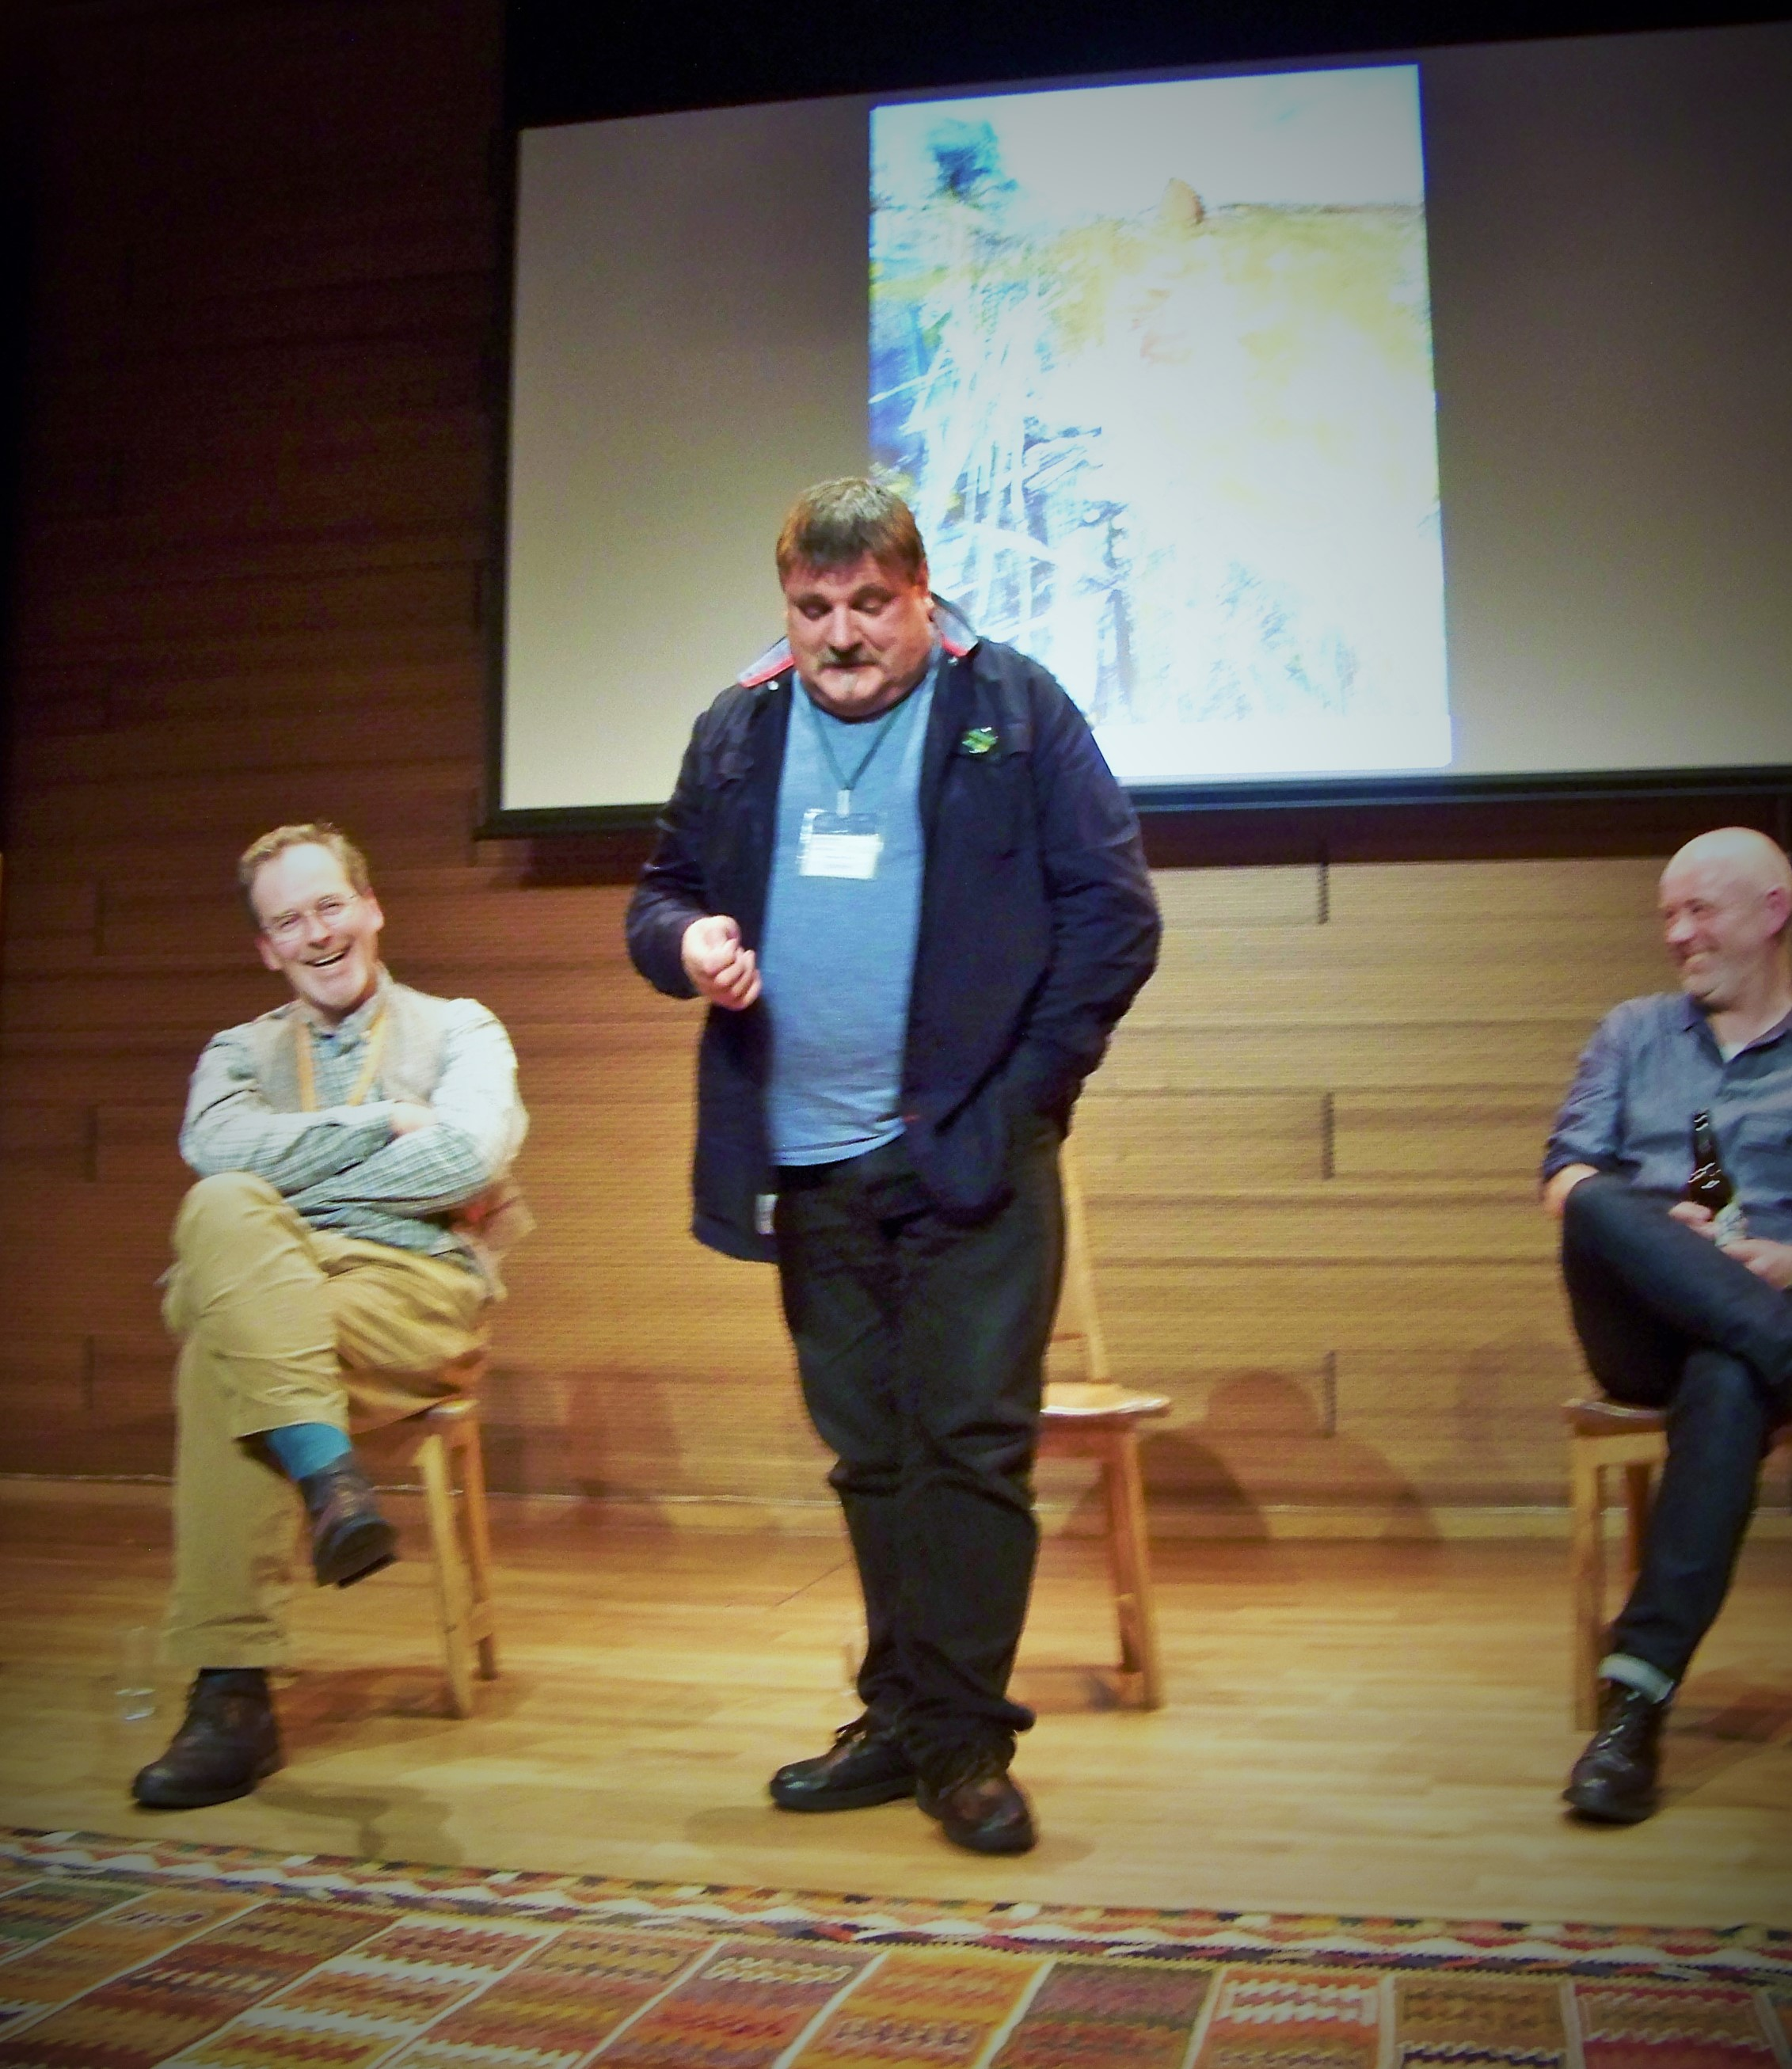 Donald Smith (left) of the Scottish Storytelling Centre in Edinburgh is entertained by Orcadian storyteller Tom Muir from Scotland's Orkney Islands. Orkneyology.com